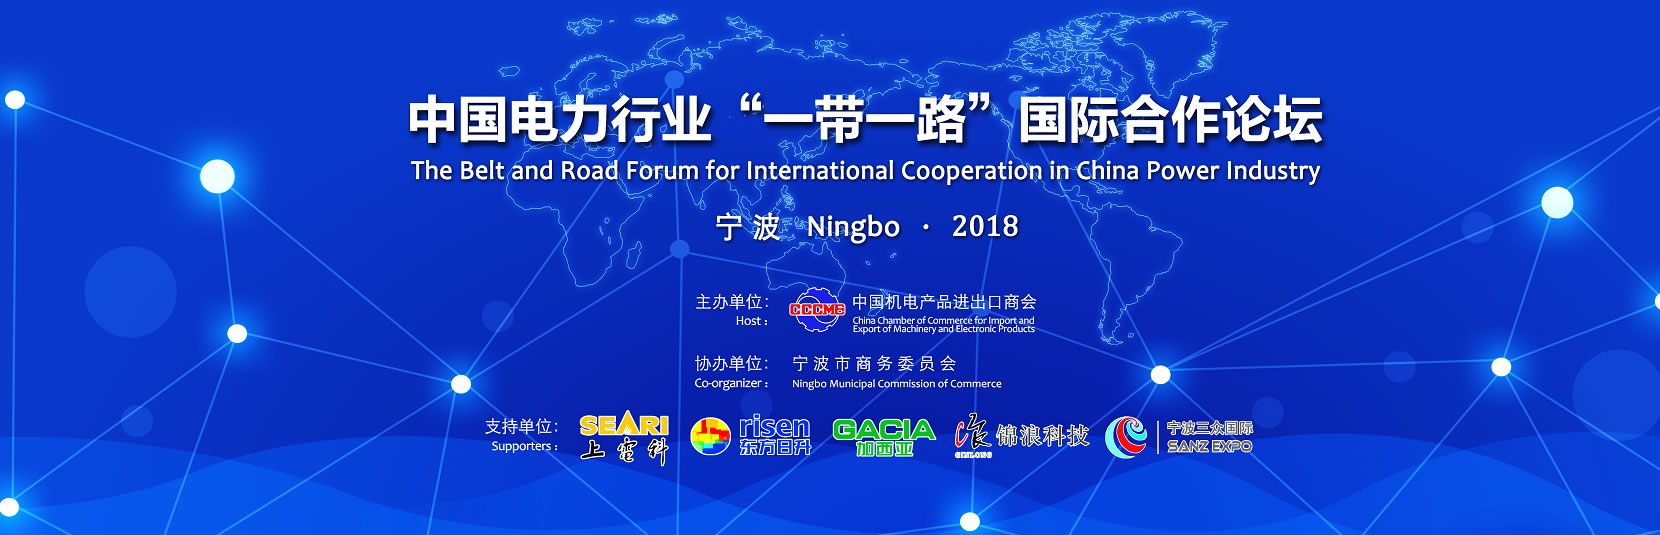 The Belt and Road Forum for International Cooperation in China Power Industry Held in Ningbo